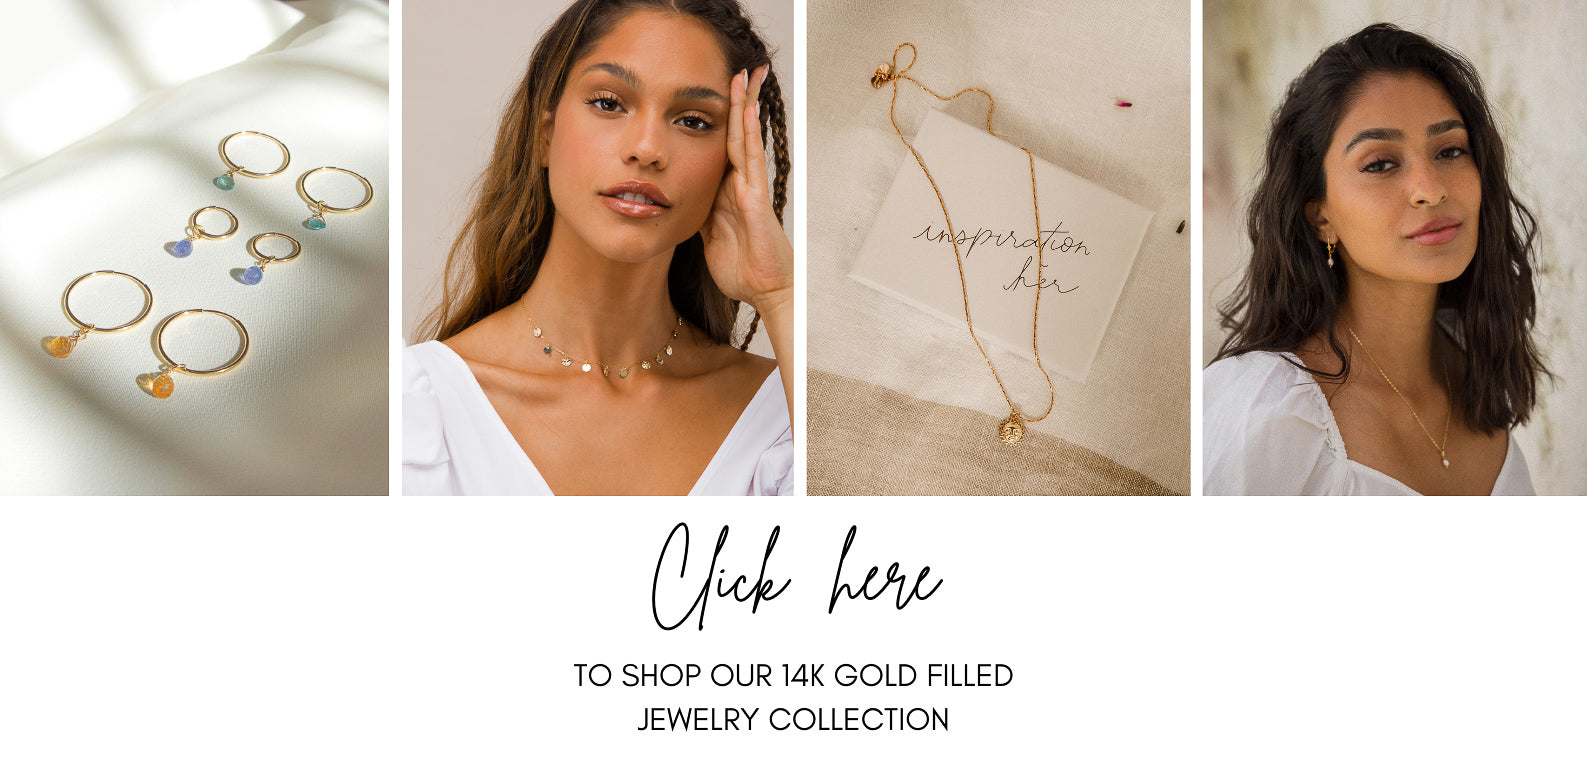 14K gold filled jewelry | Inspiration Her